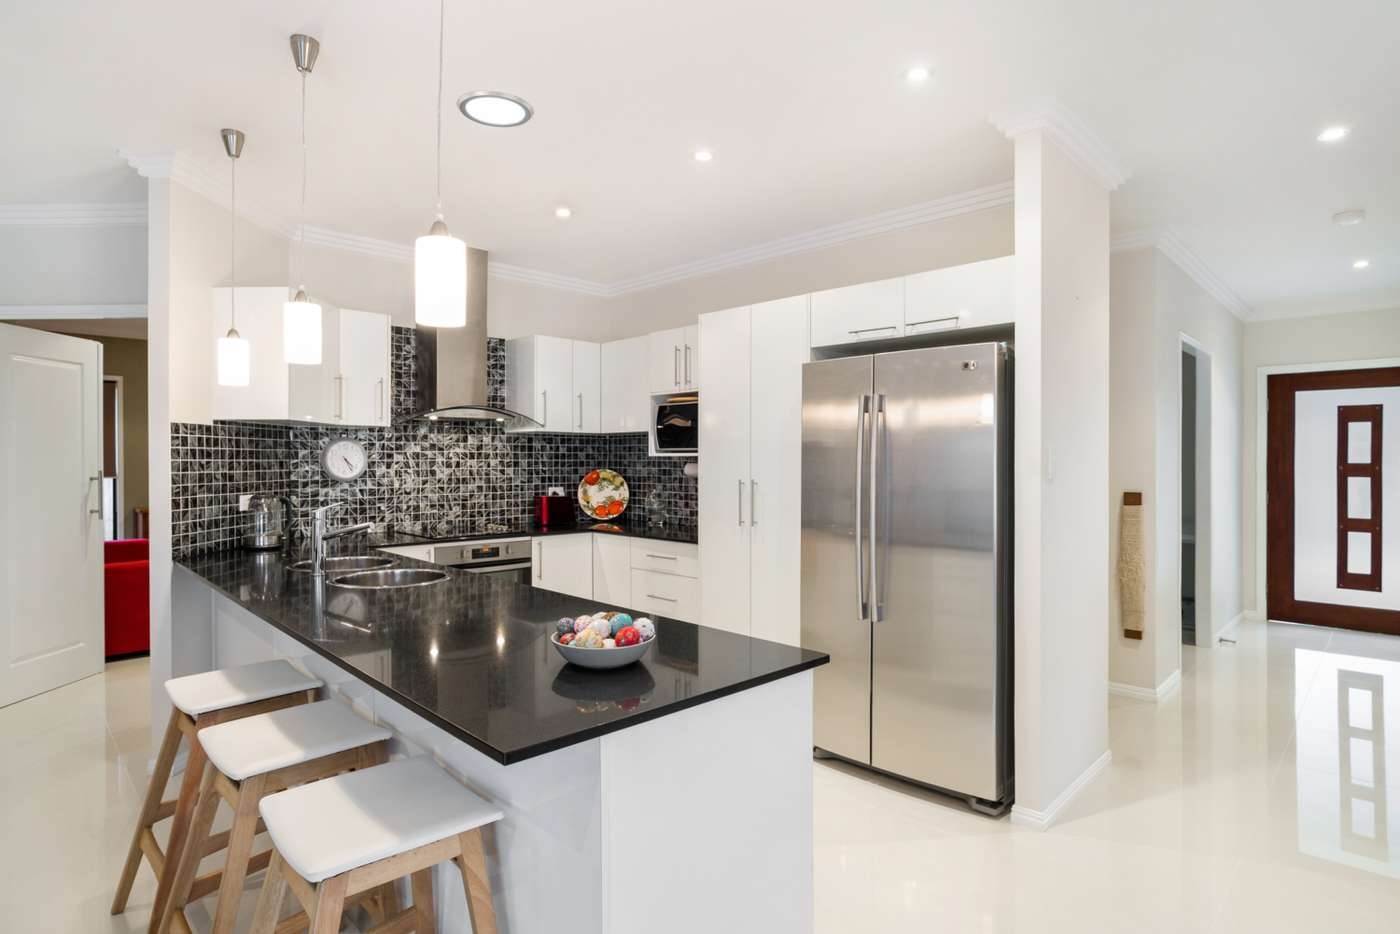 Main view of Homely house listing, 110 Xavier Herbert Dr, Redlynch QLD 4870